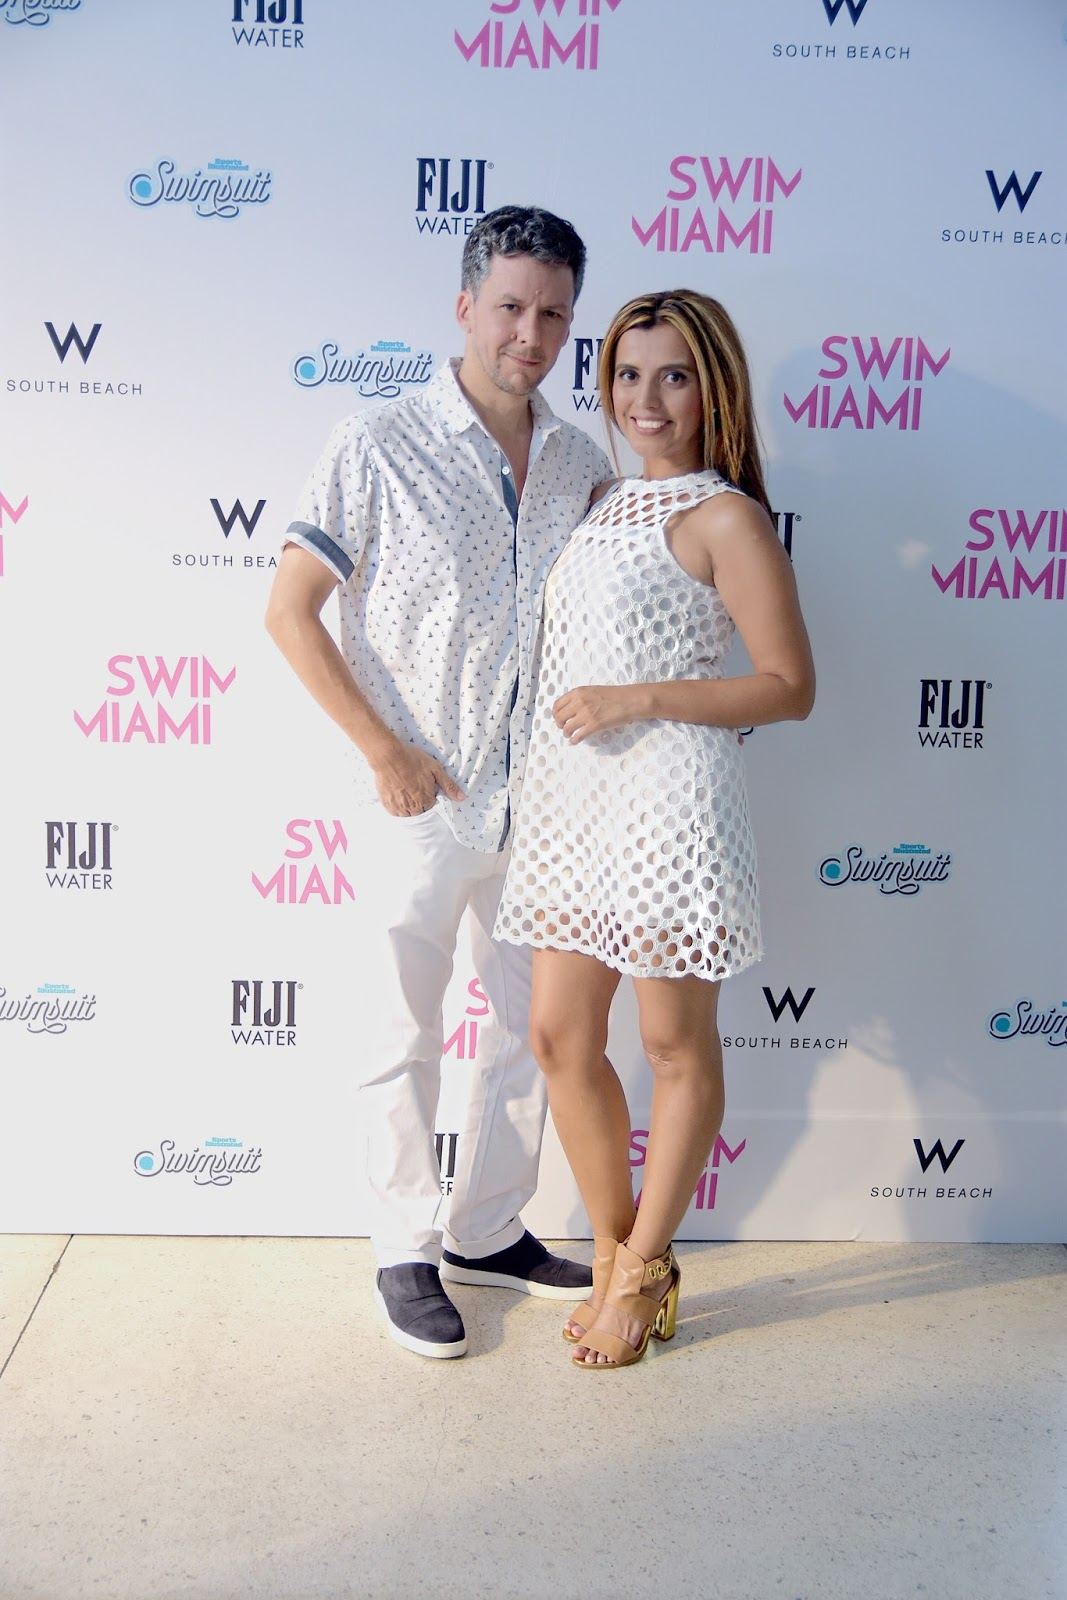 SPORTS ILLUSTRATED & WALL PRESENT: SWIMMIAMI OPENING PARTY 2017